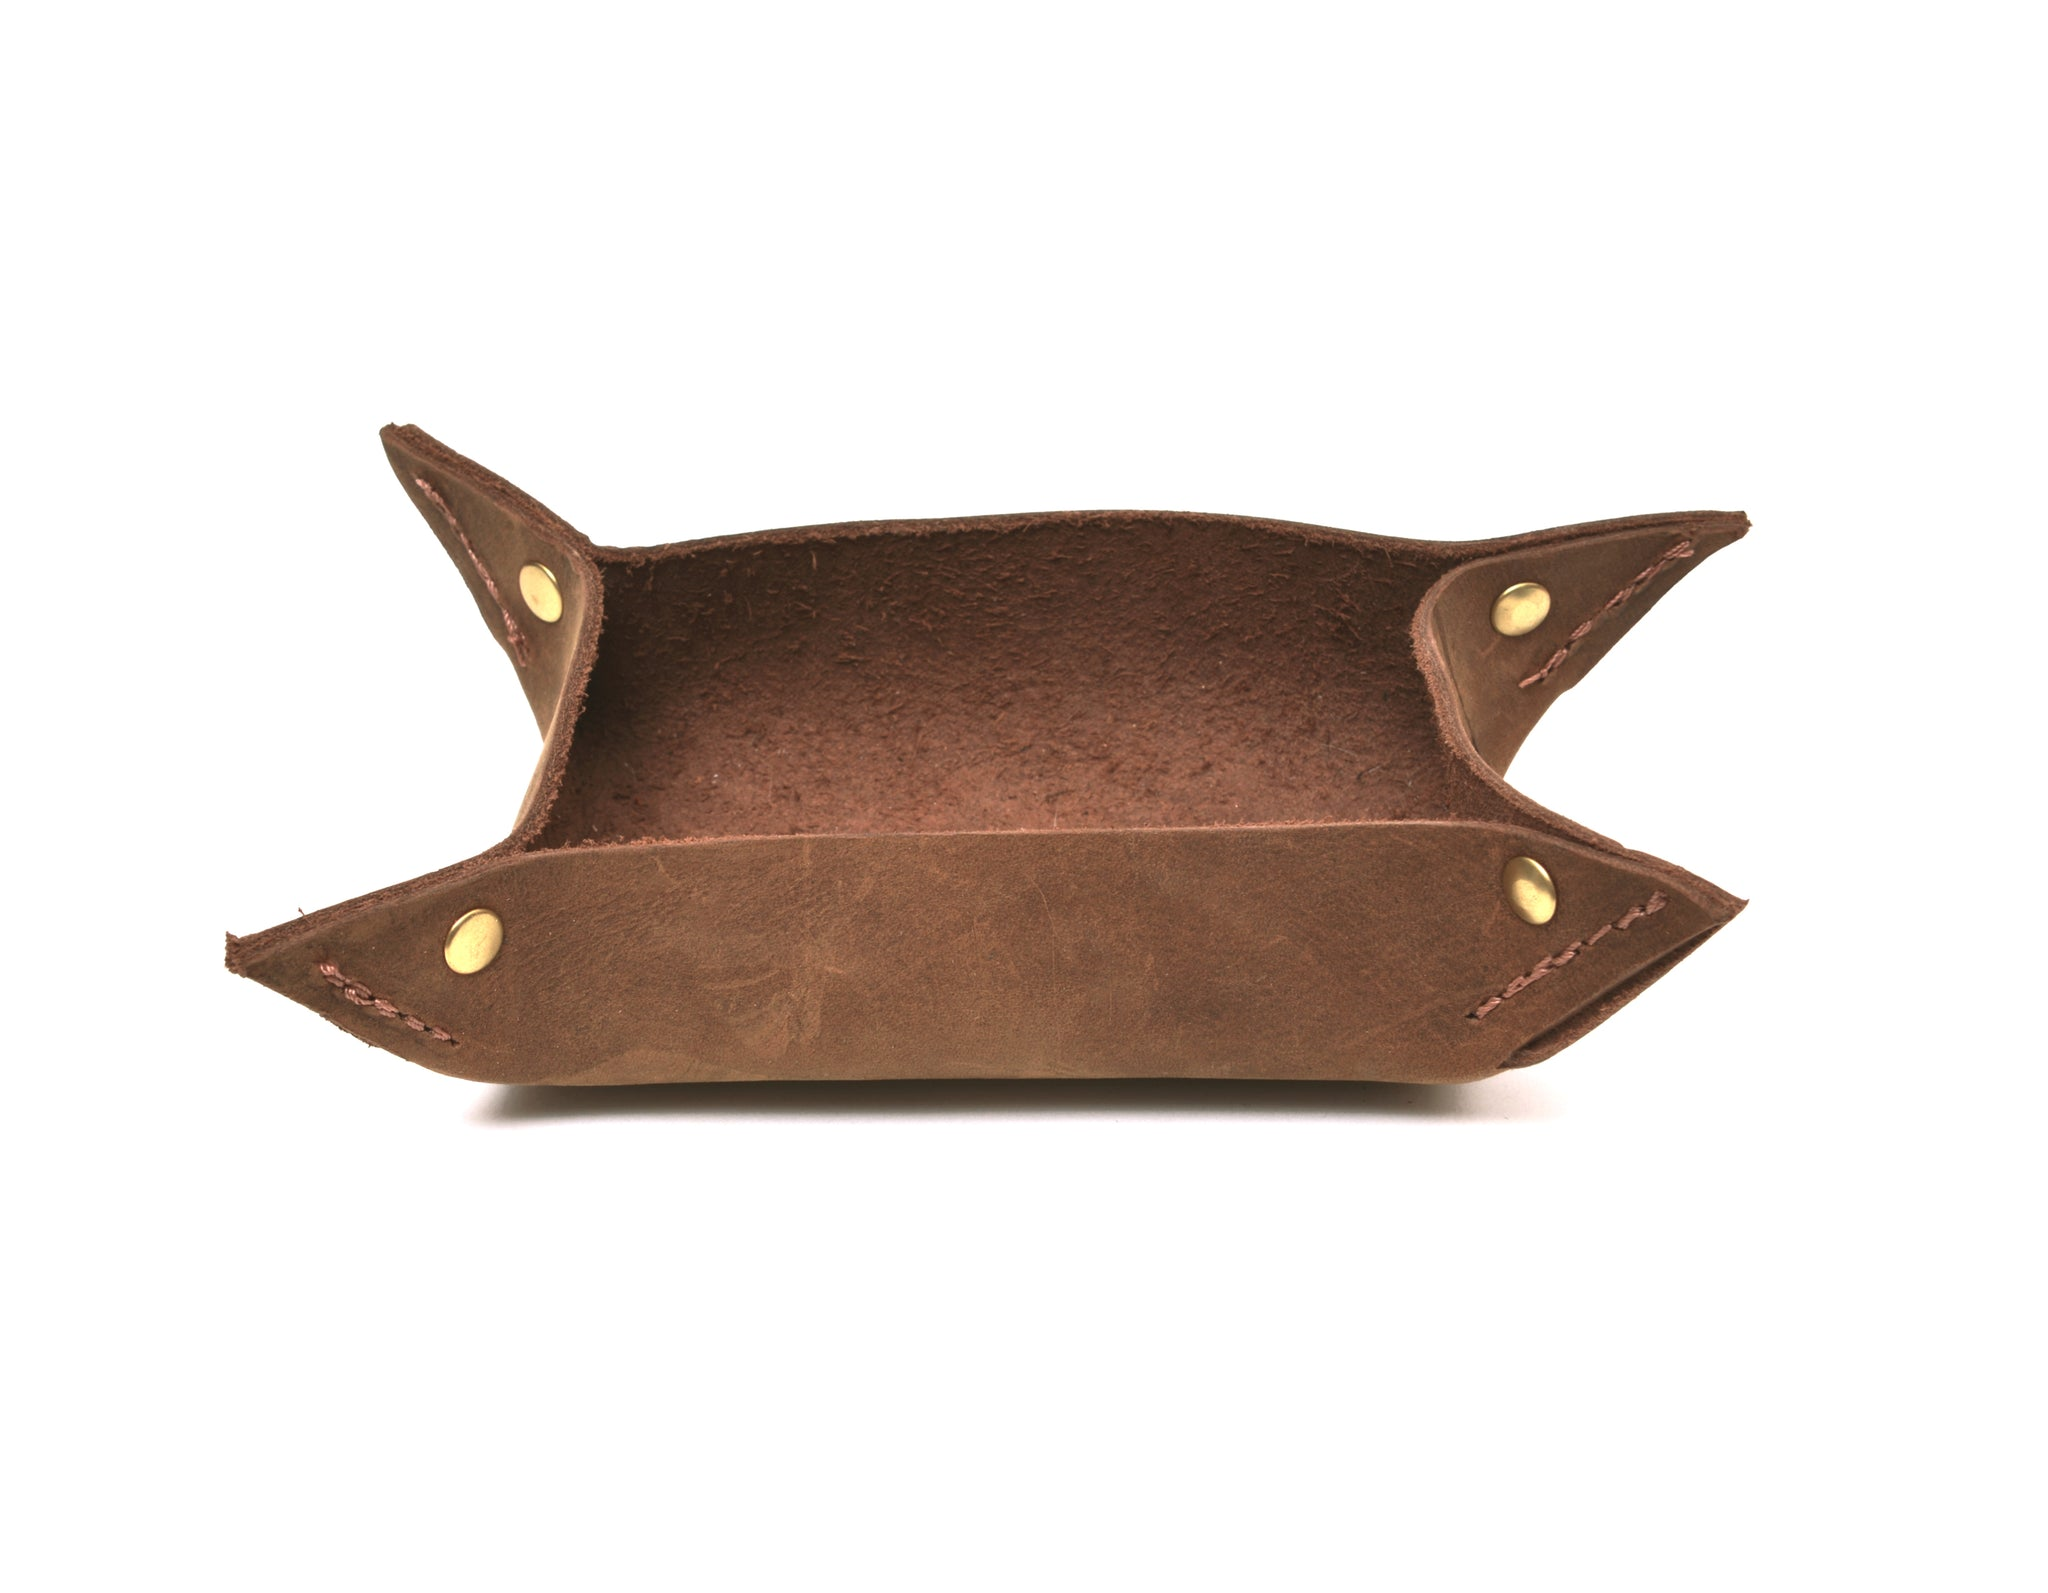 Leather Valet Tray, Leather Catch All, Small Brown Leather Tray